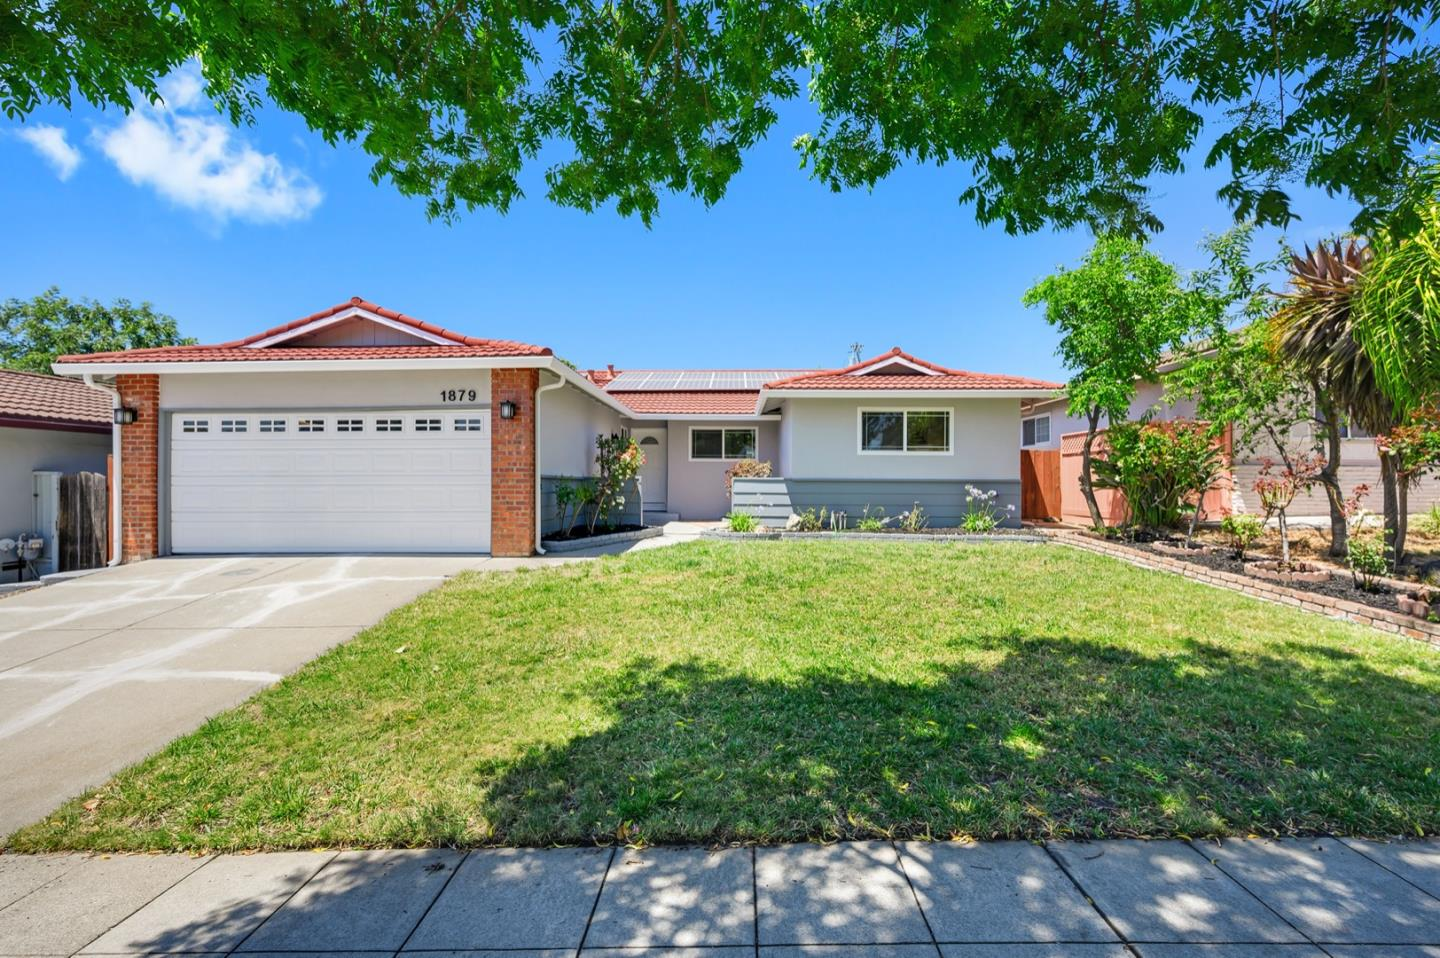 Detail Gallery Image 1 of 46 For 1879 Yosemite Dr, Milpitas, CA 95035 - 4 Beds   2 Baths